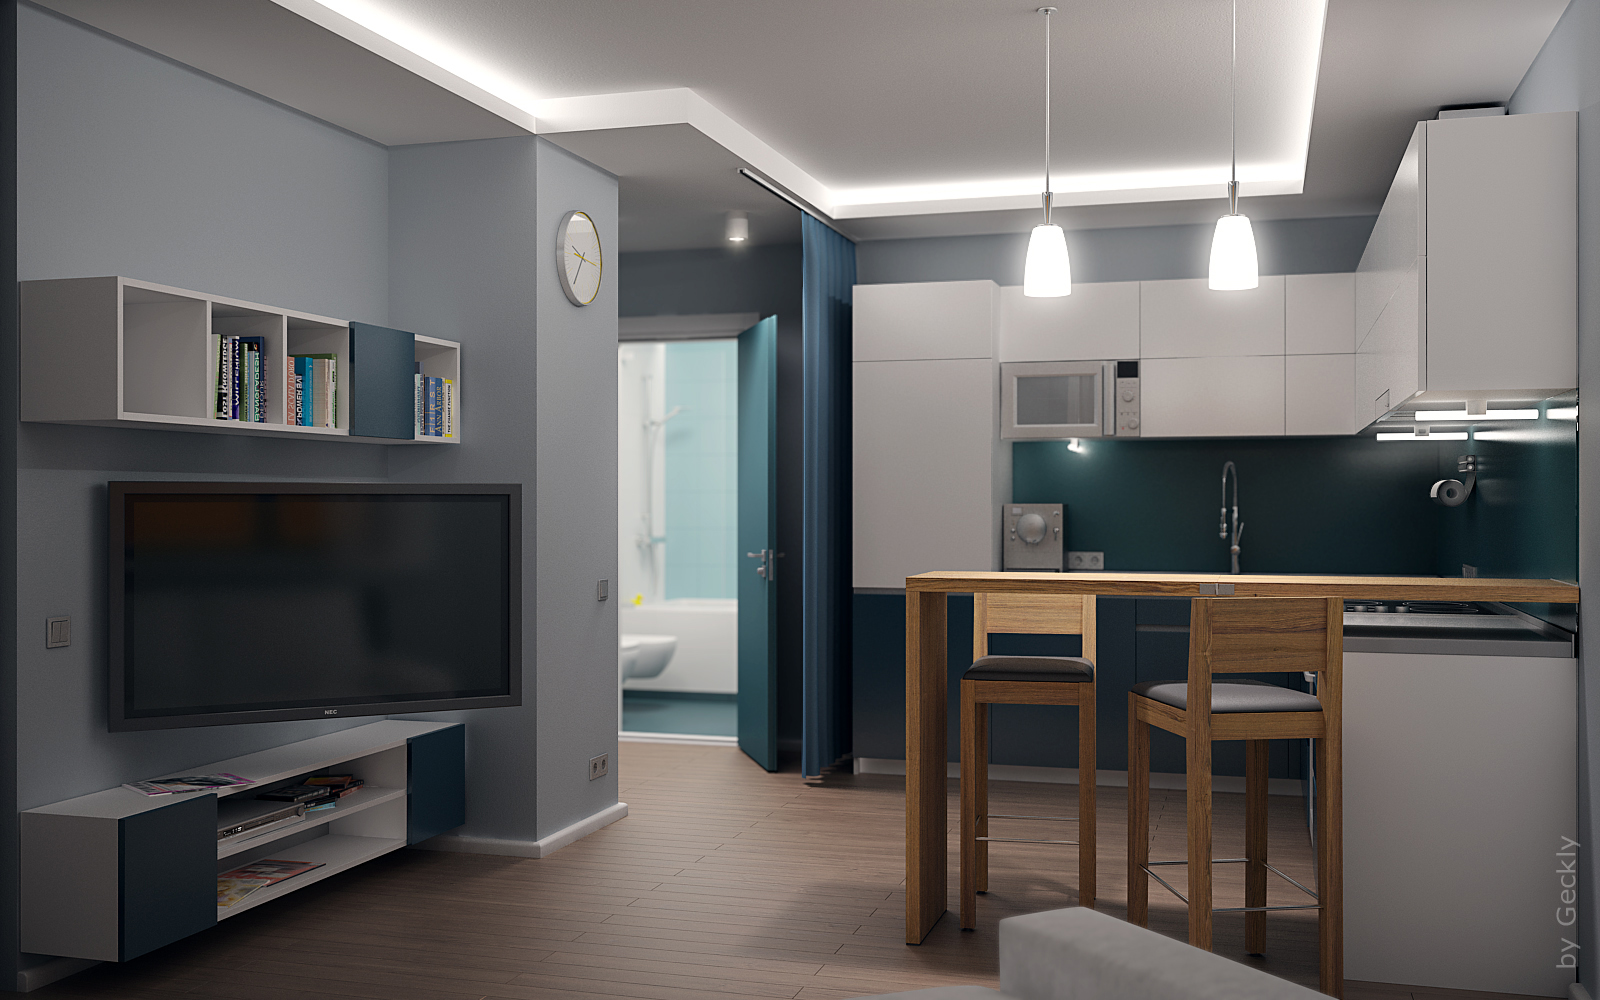 Small flat 003 by geckly on deviantart for Small flat interior